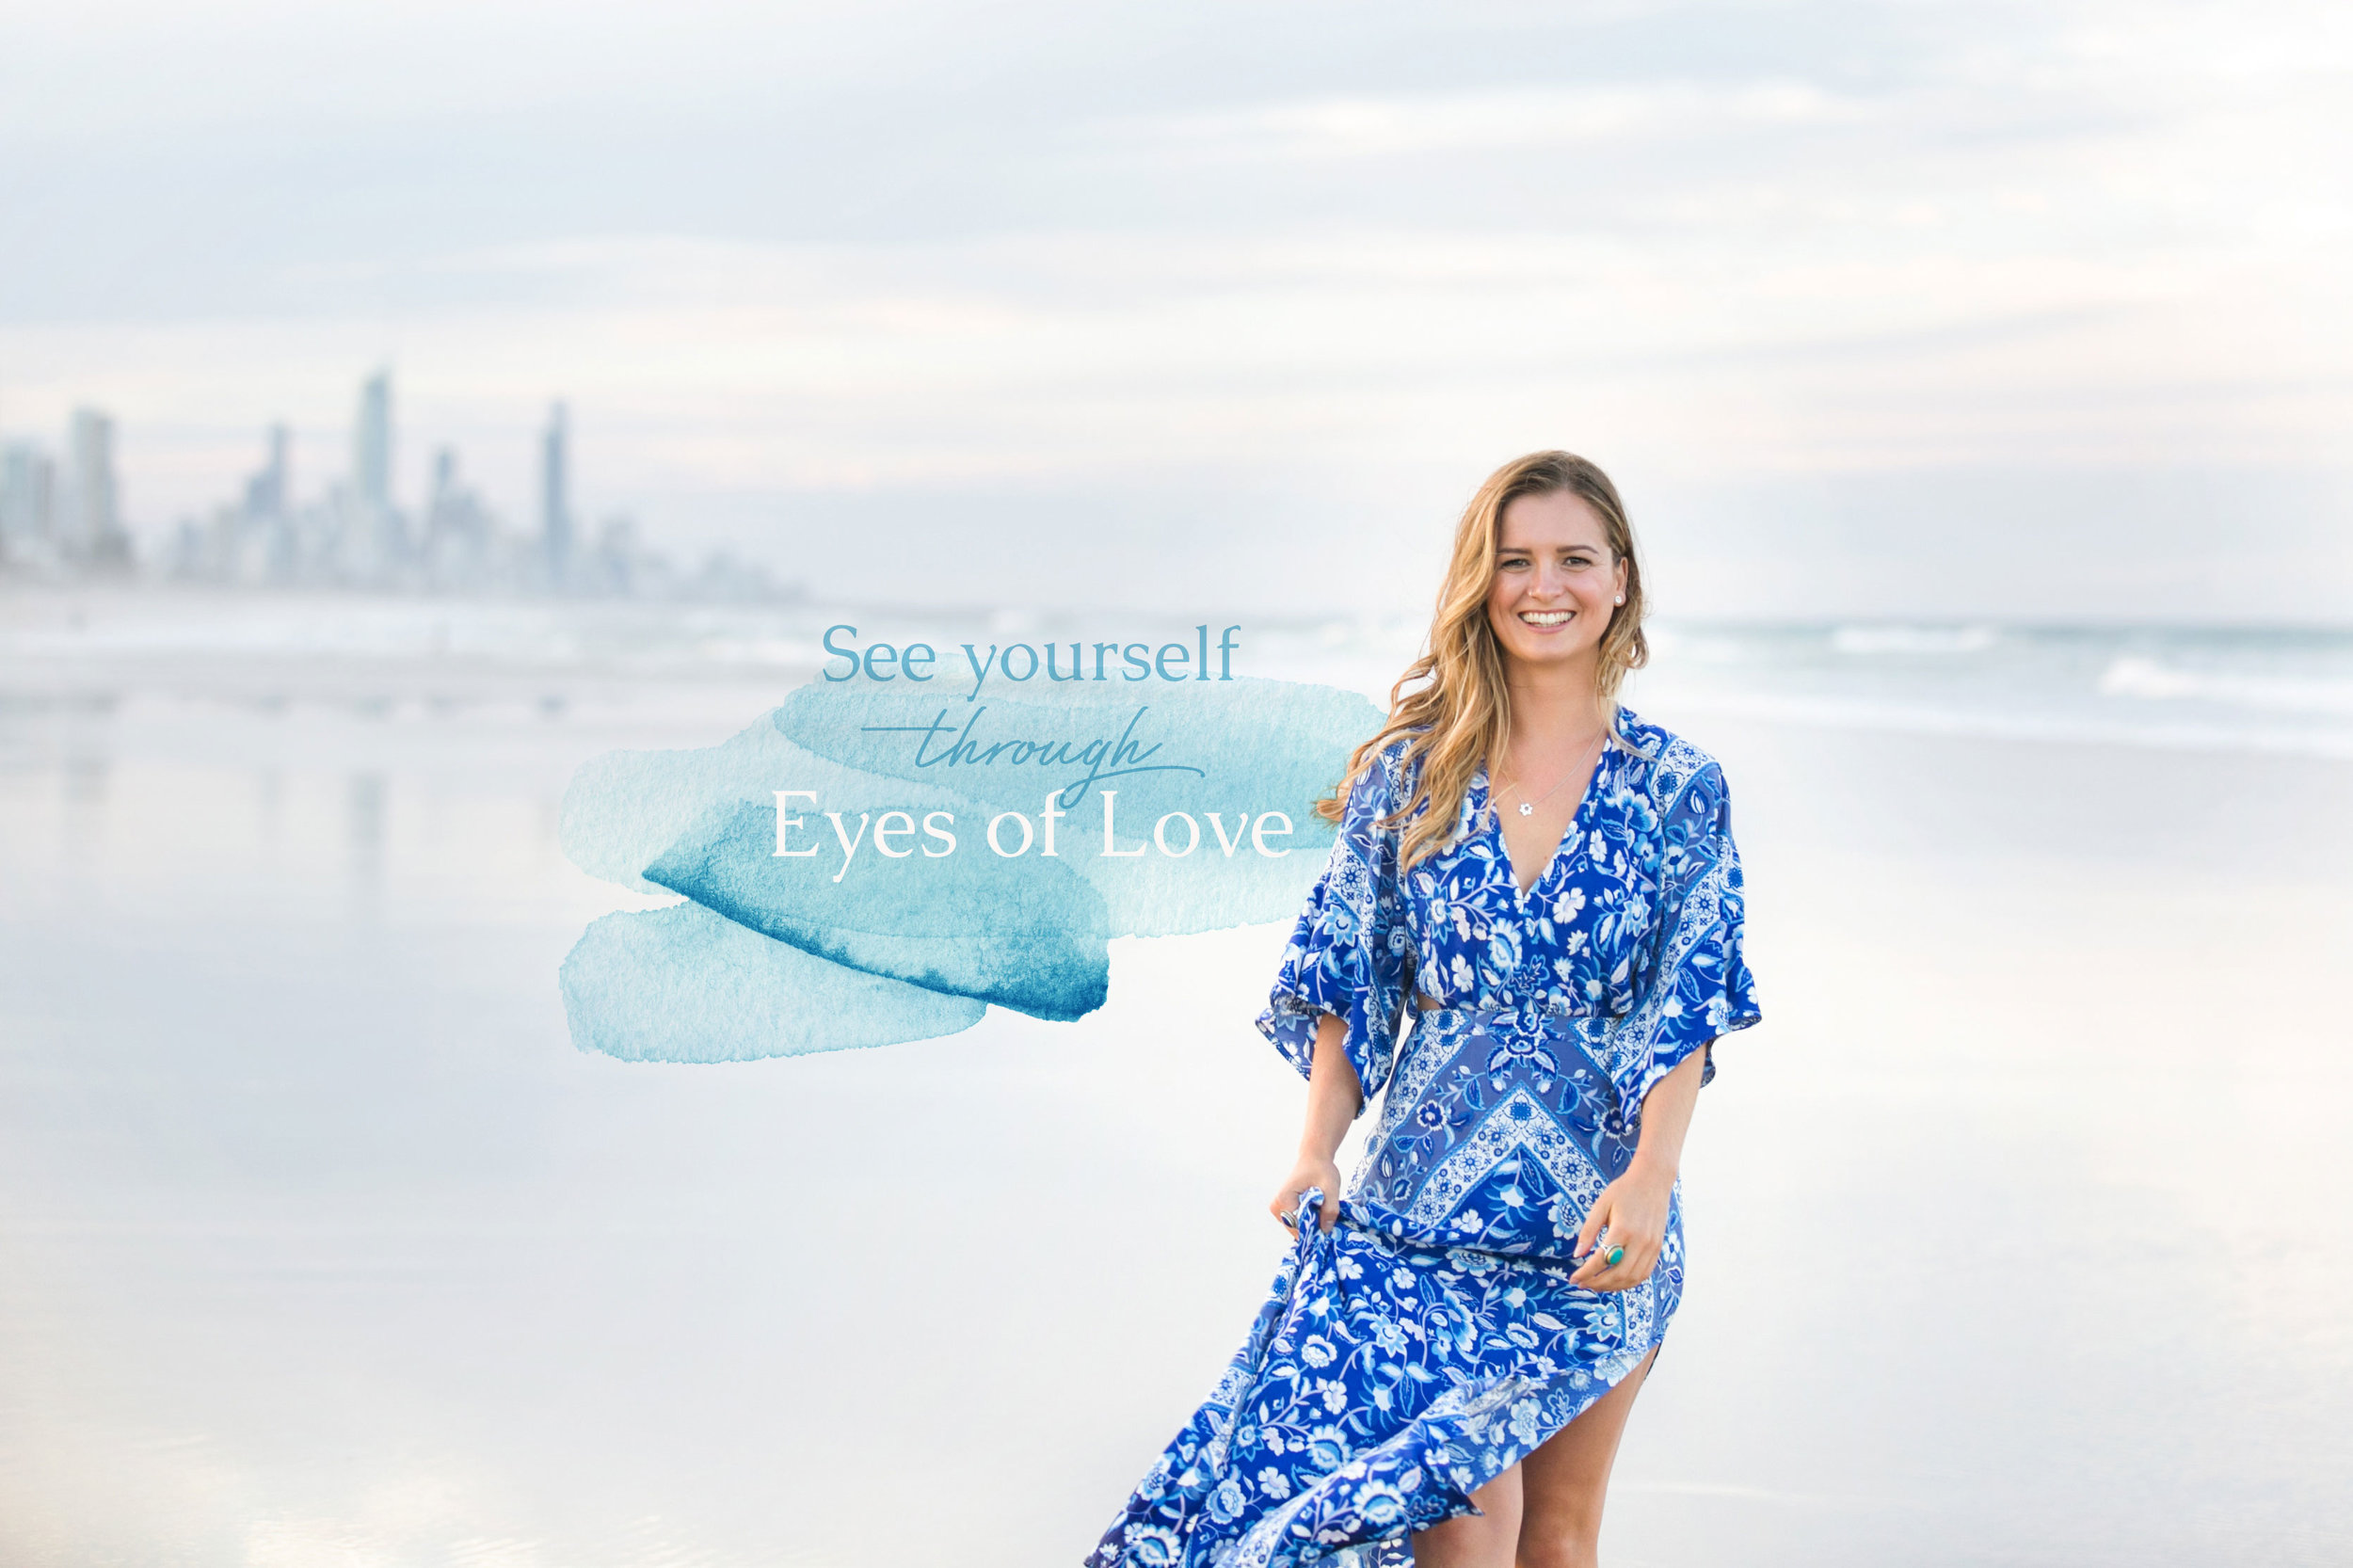 See Yourself Through Eyes Of Love